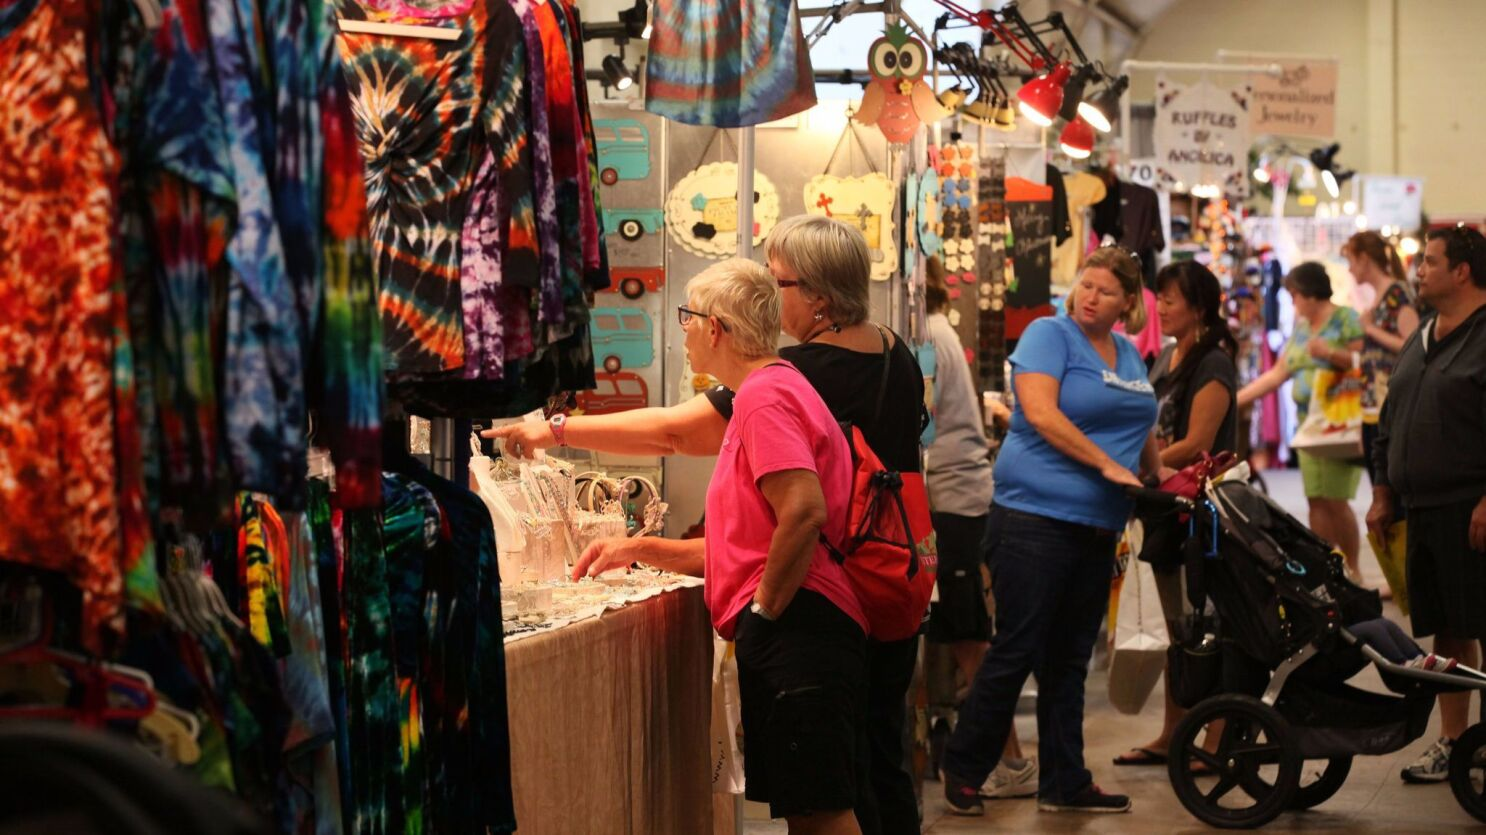 Three days of original artwork and crafts at annual festival